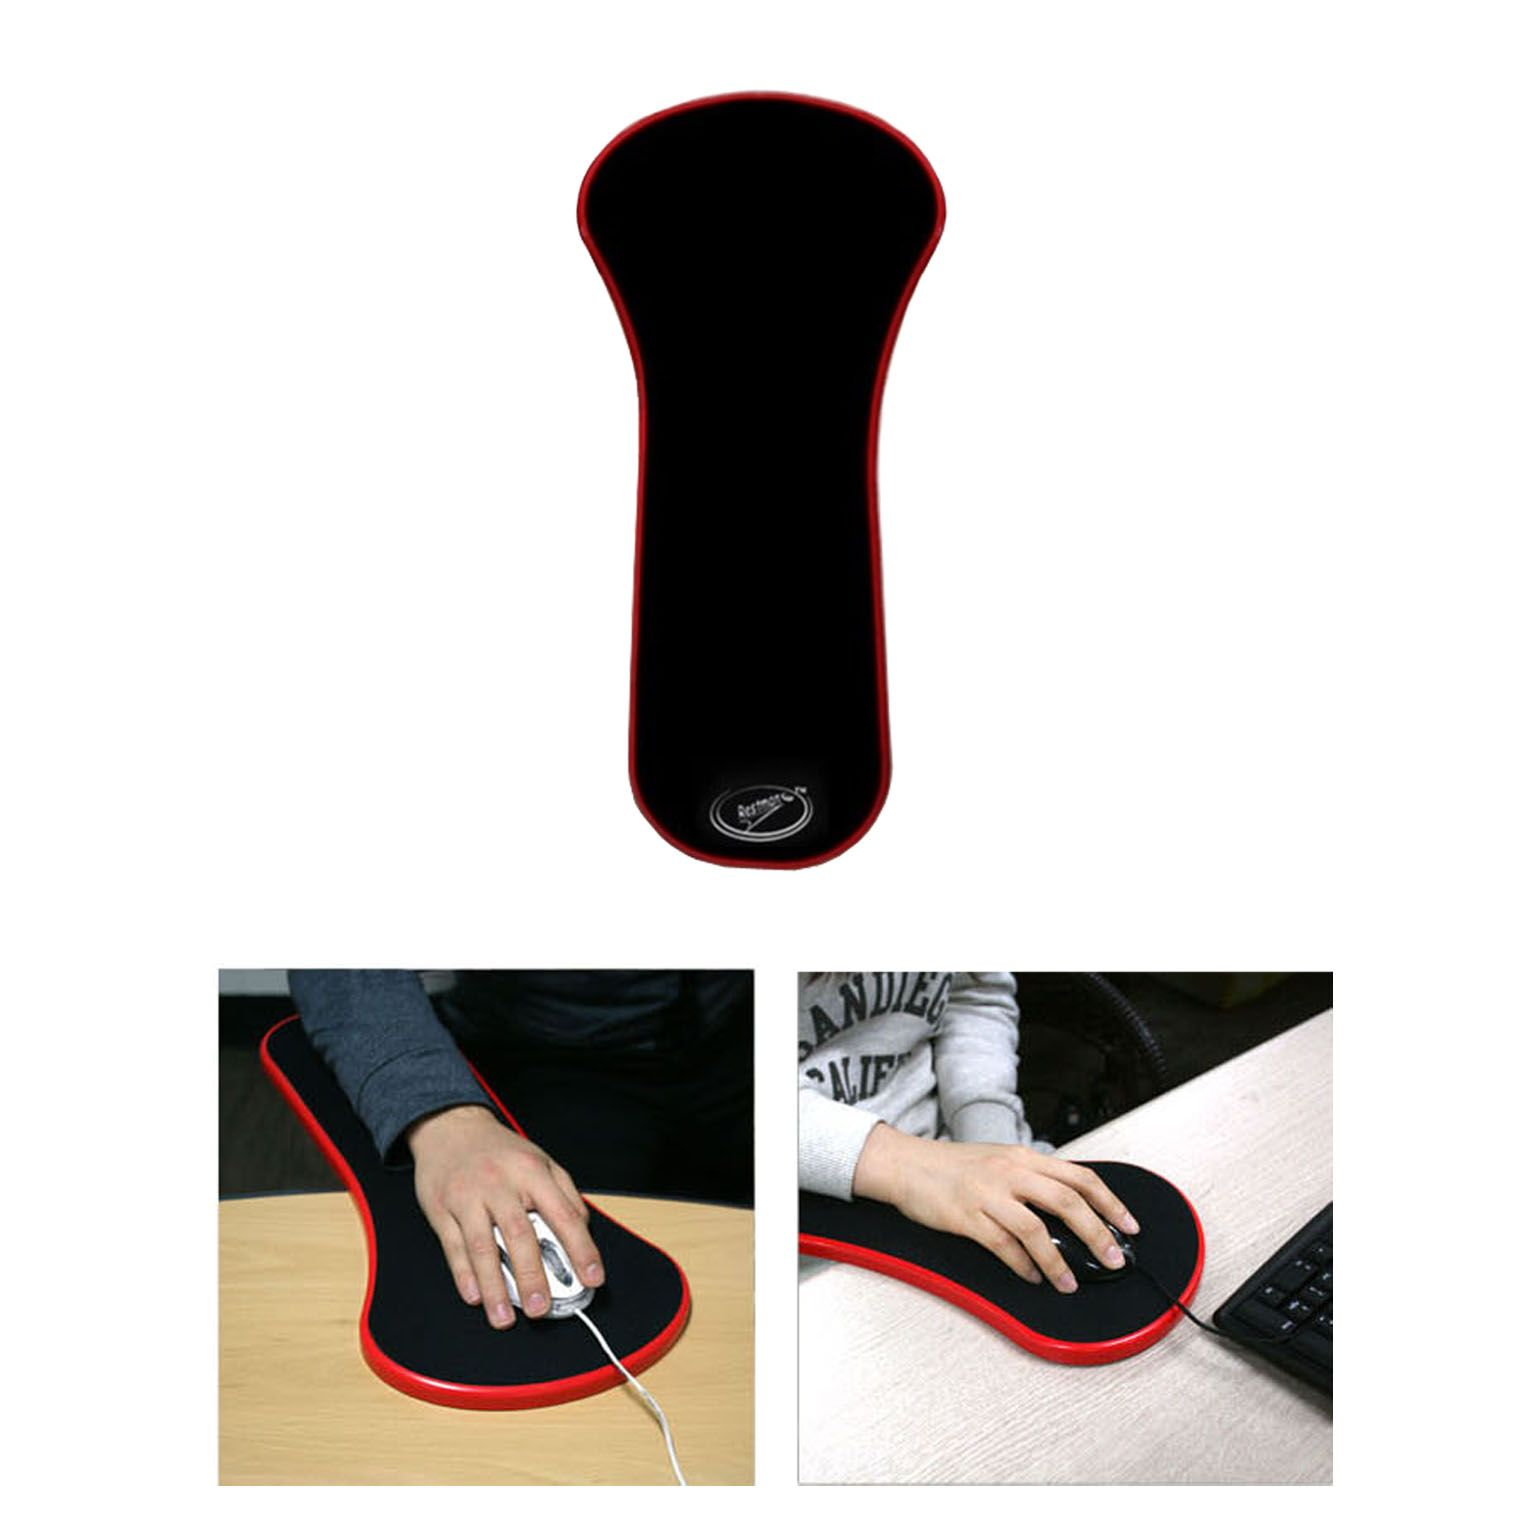 fishing chair umbrella clamp overstock dining room covers new easy arm pad for desk or rest mouse